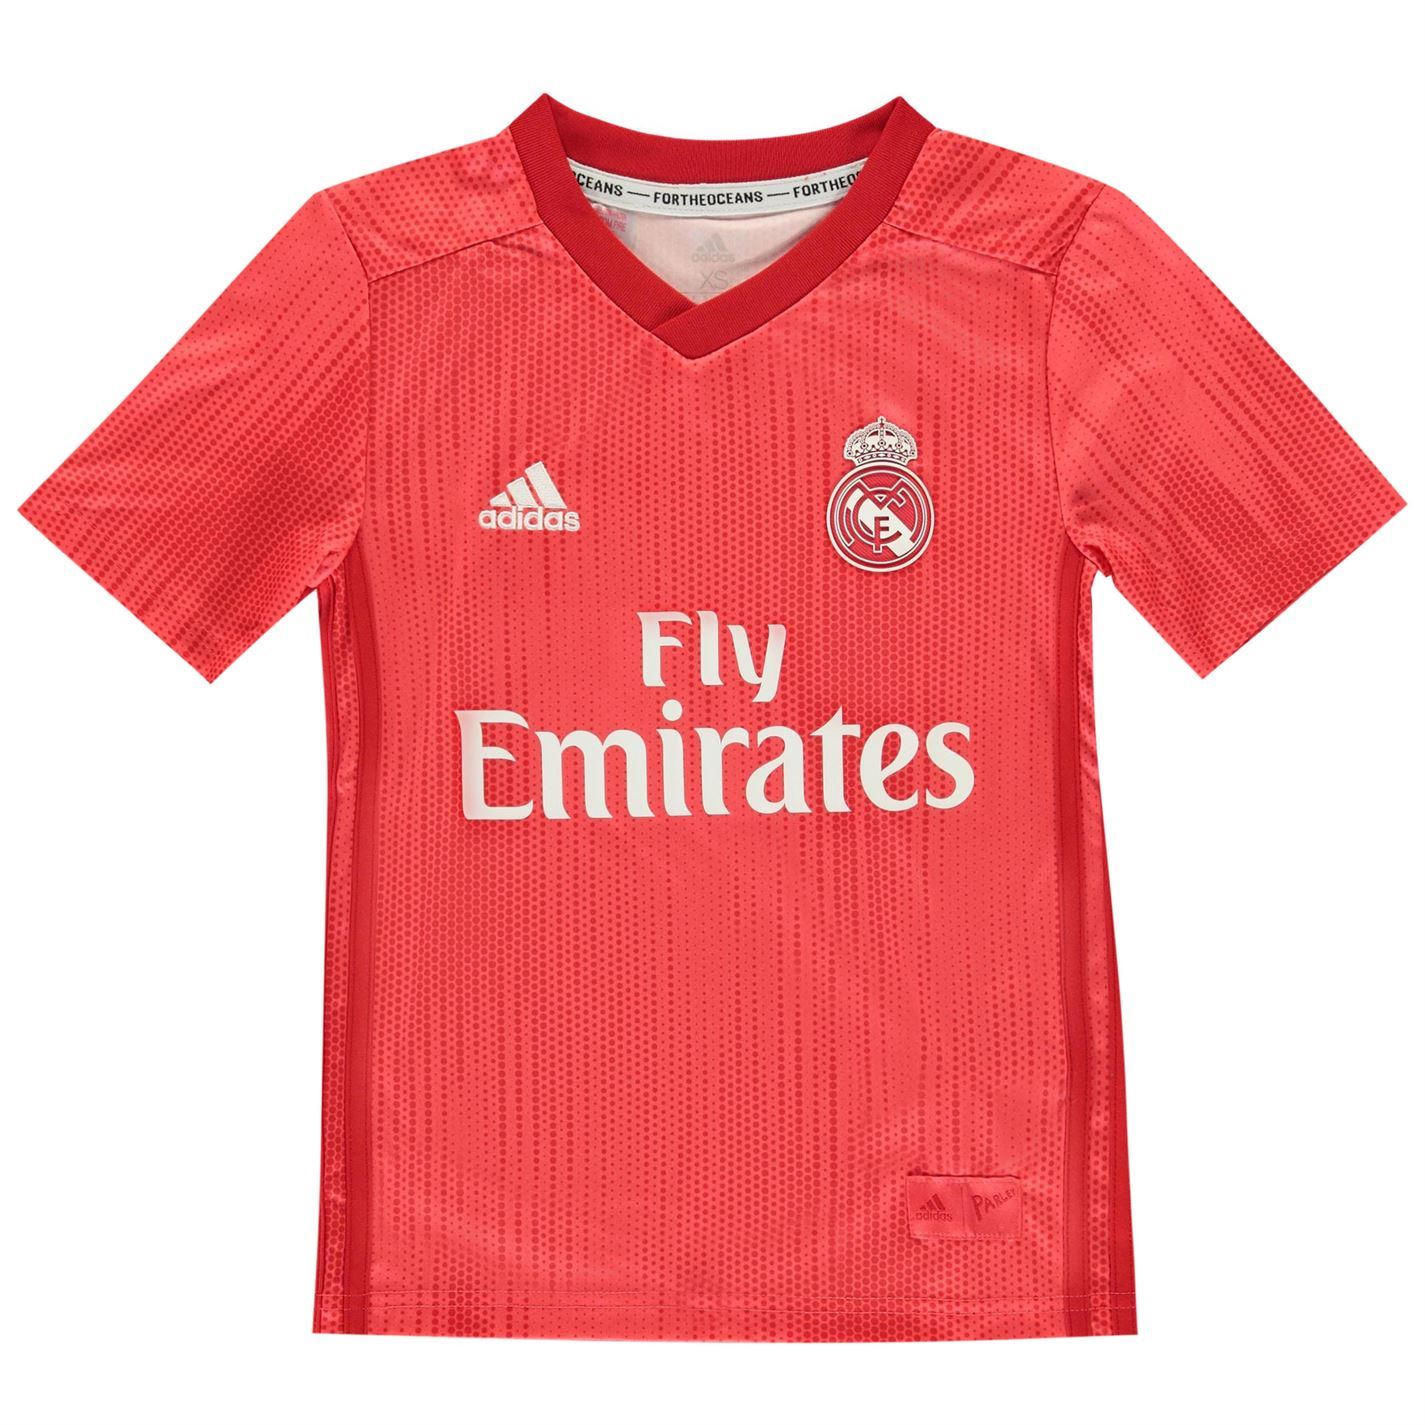 54ceacfeaad adidas Real Madrid Third Jersey 2018 2019 Juniors Red Football Soccer Shirt  Top